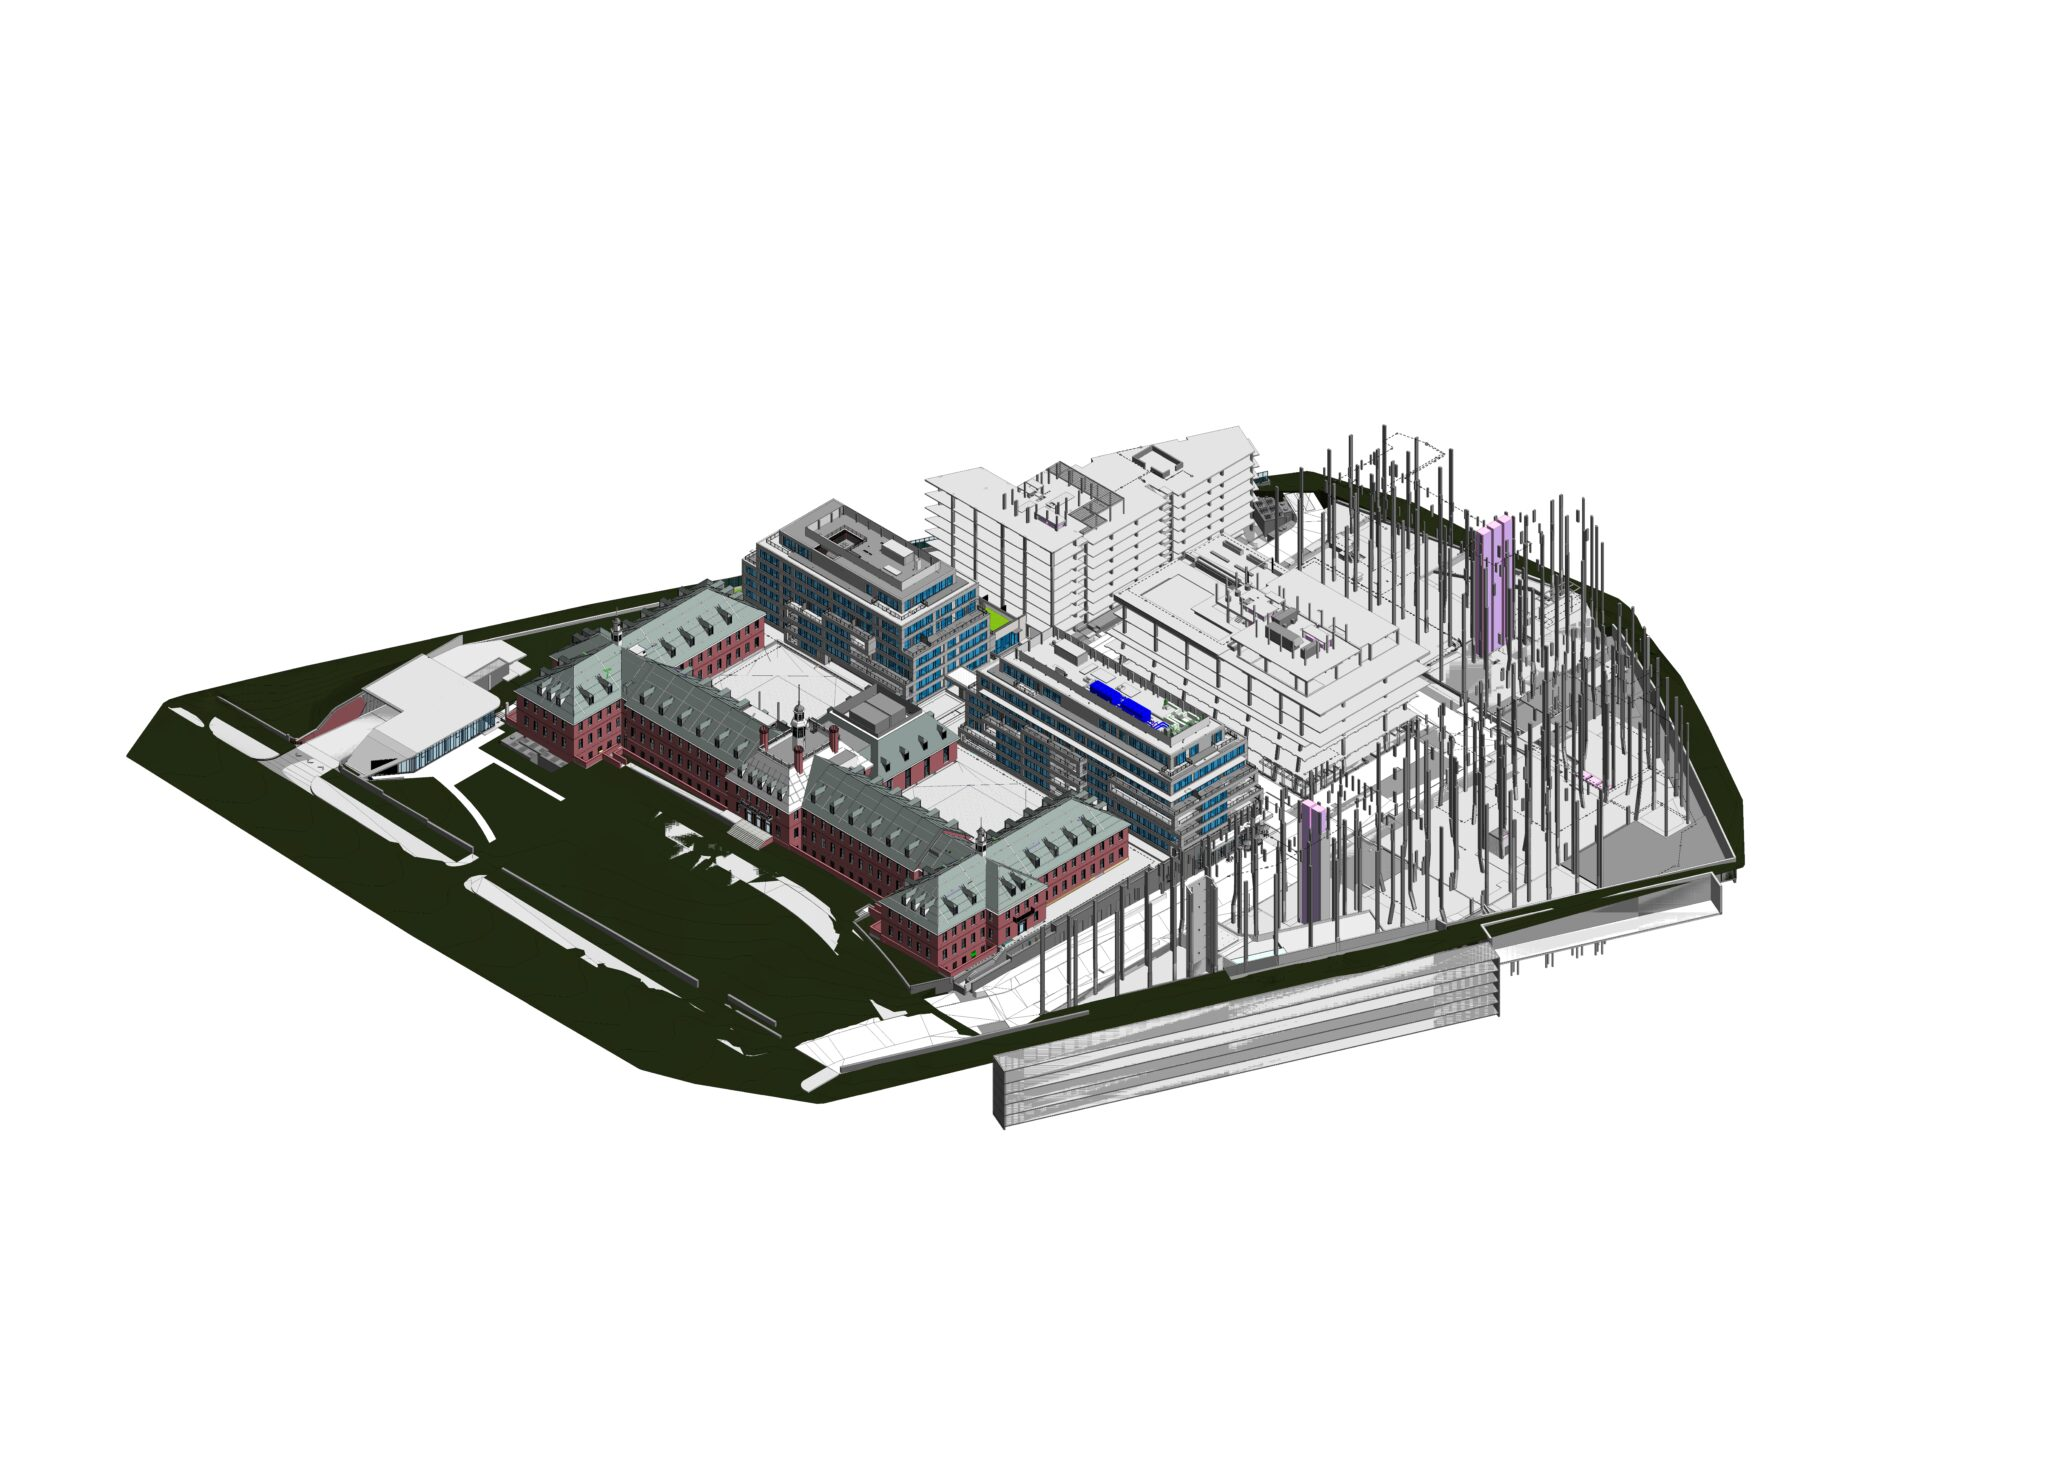 Architectural and Engineering firms in DC